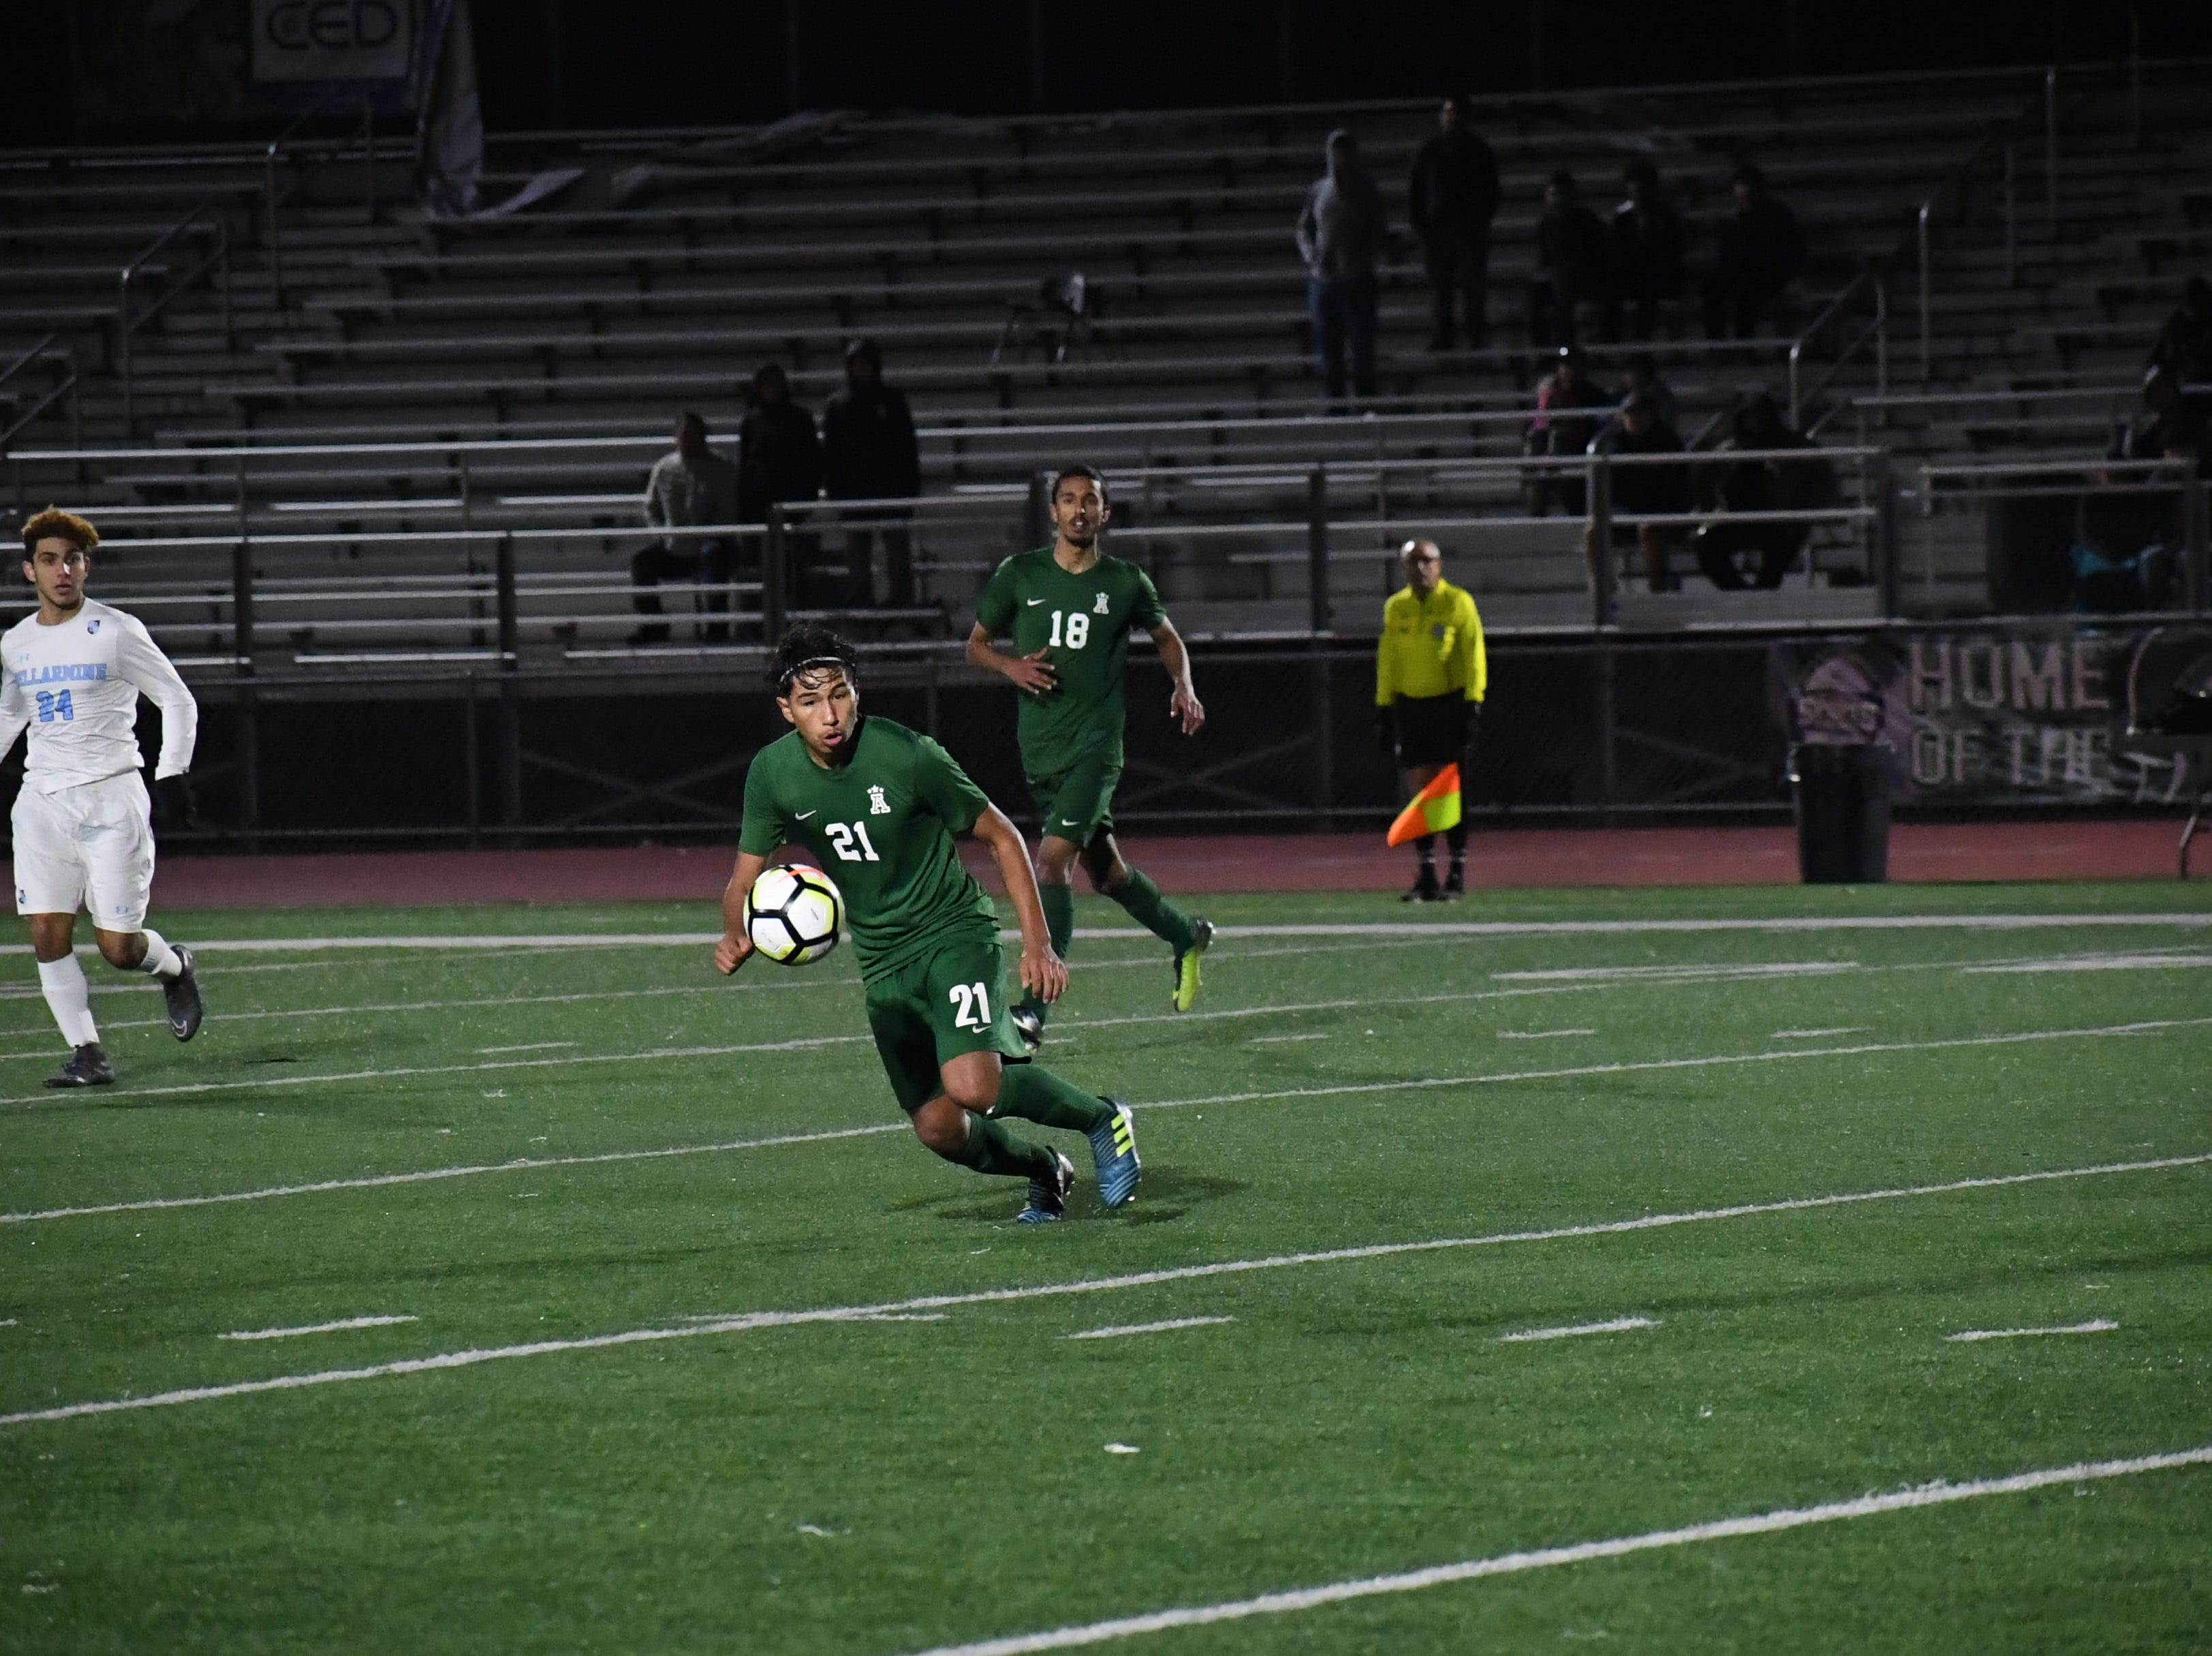 Midfielder Sergio Mejia-Sanchez (21) chases down the ball after a header.